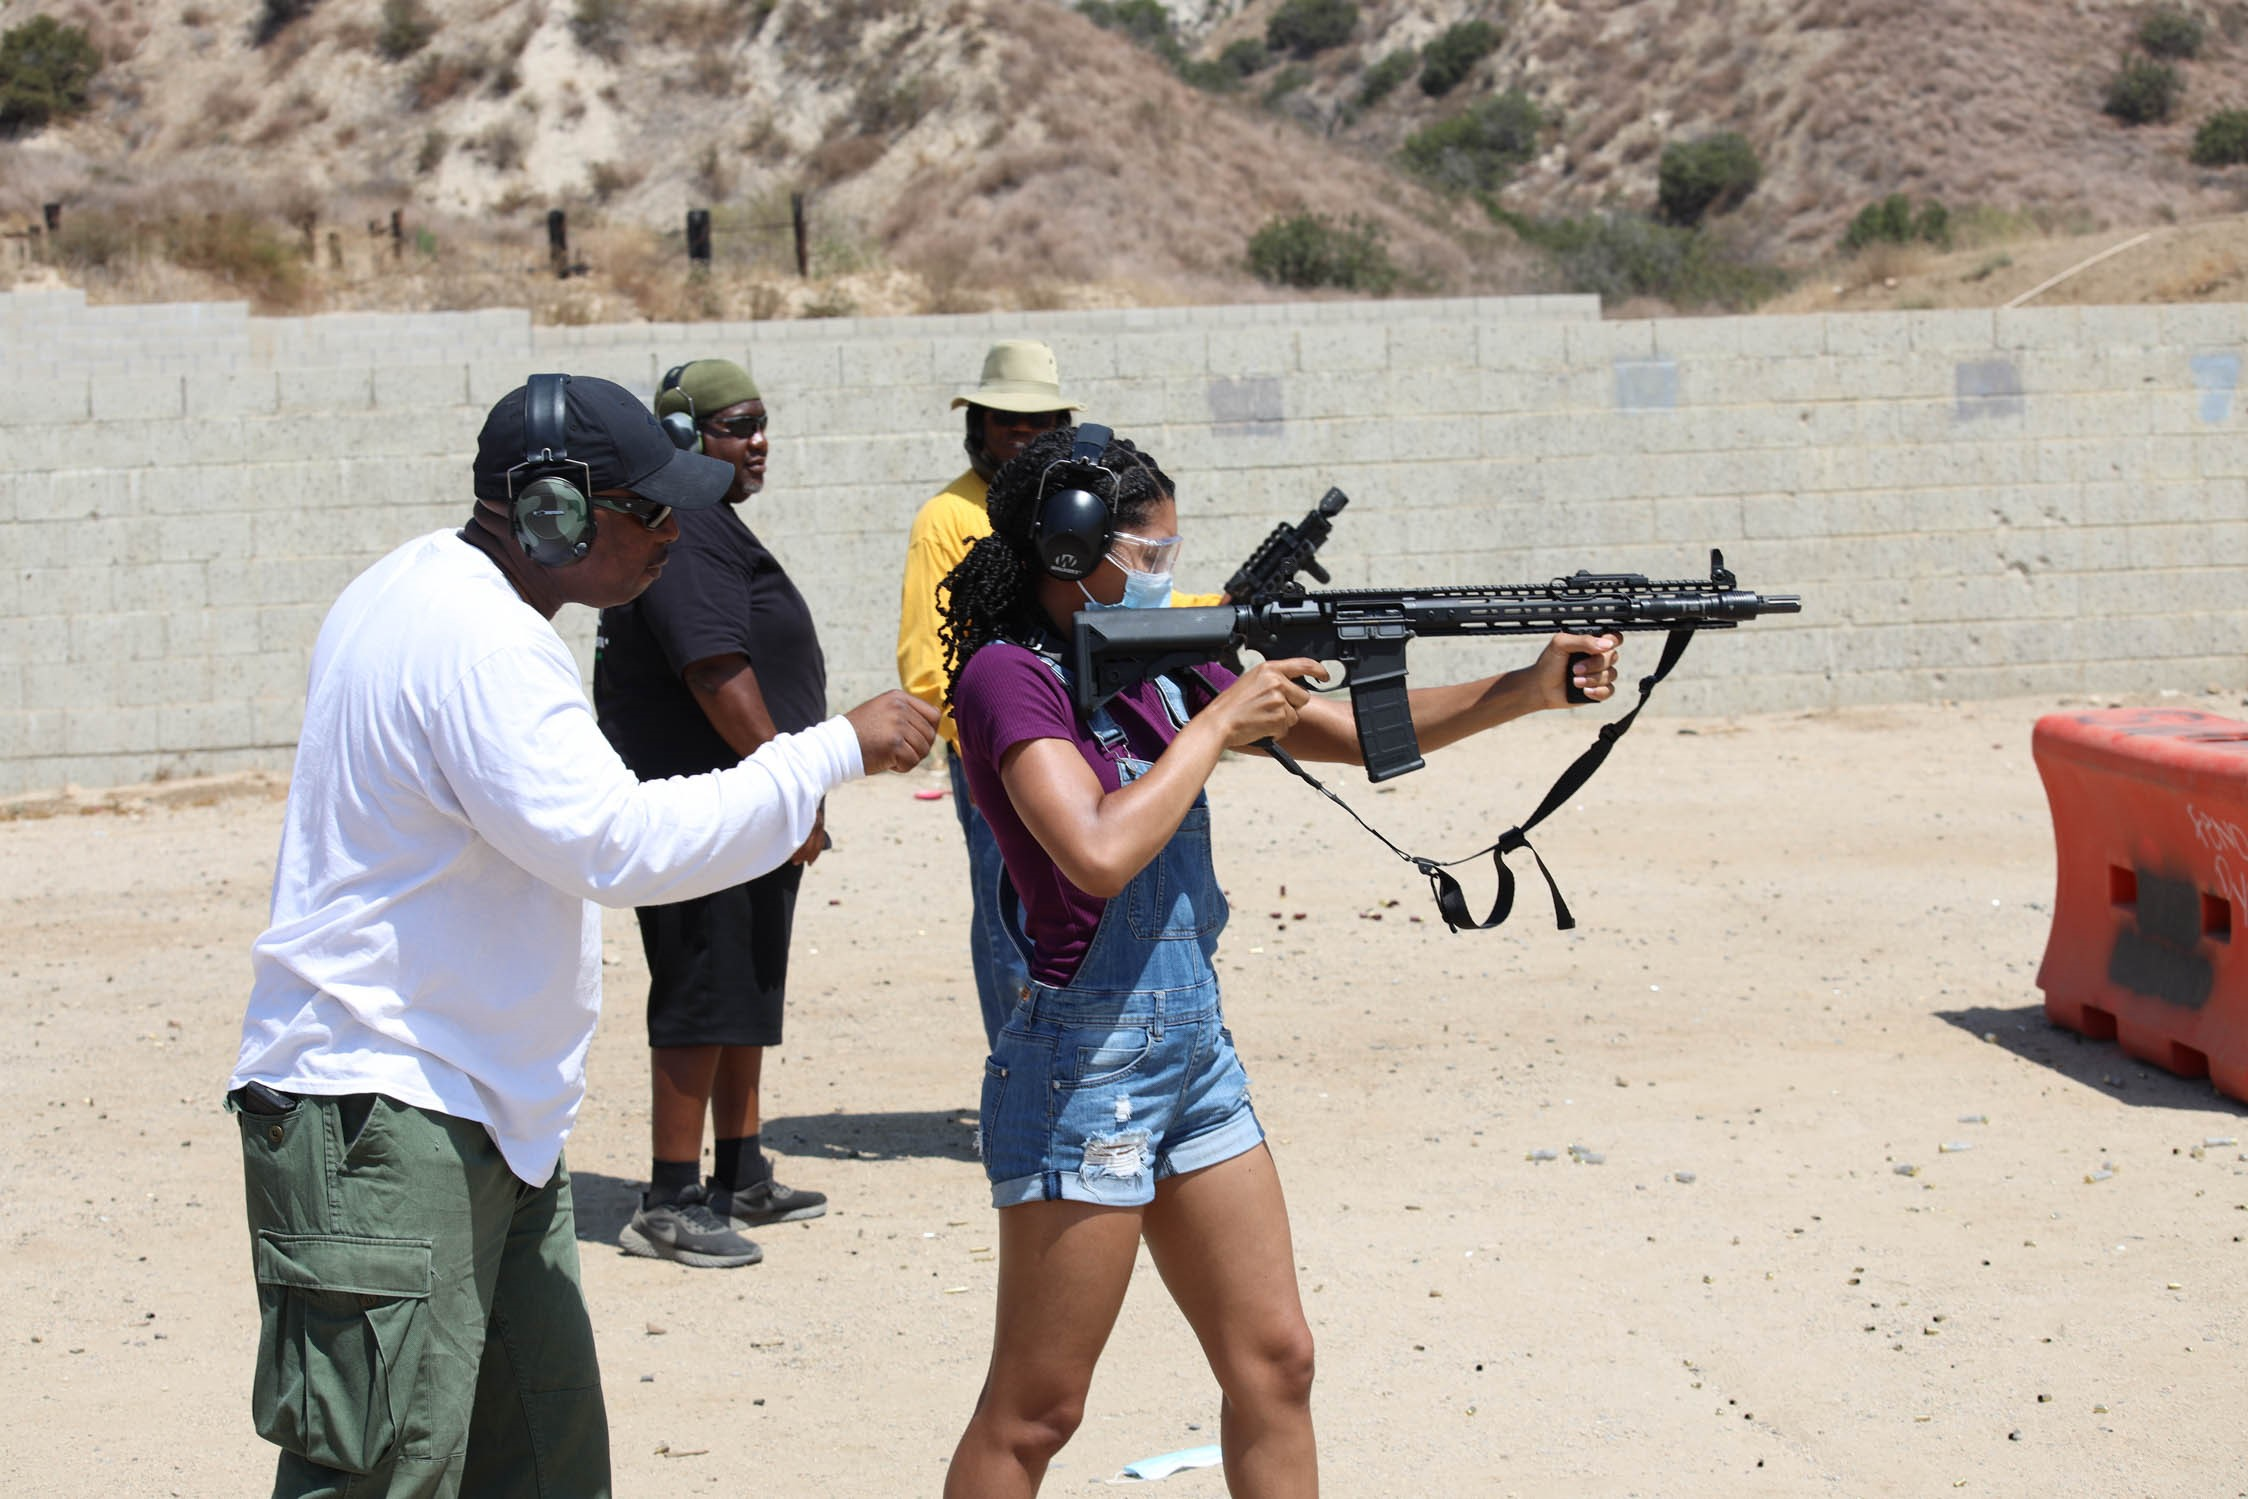 An instructor is behind a female student. The Student has a magazine fed rifle, sholdered and pointed down range.